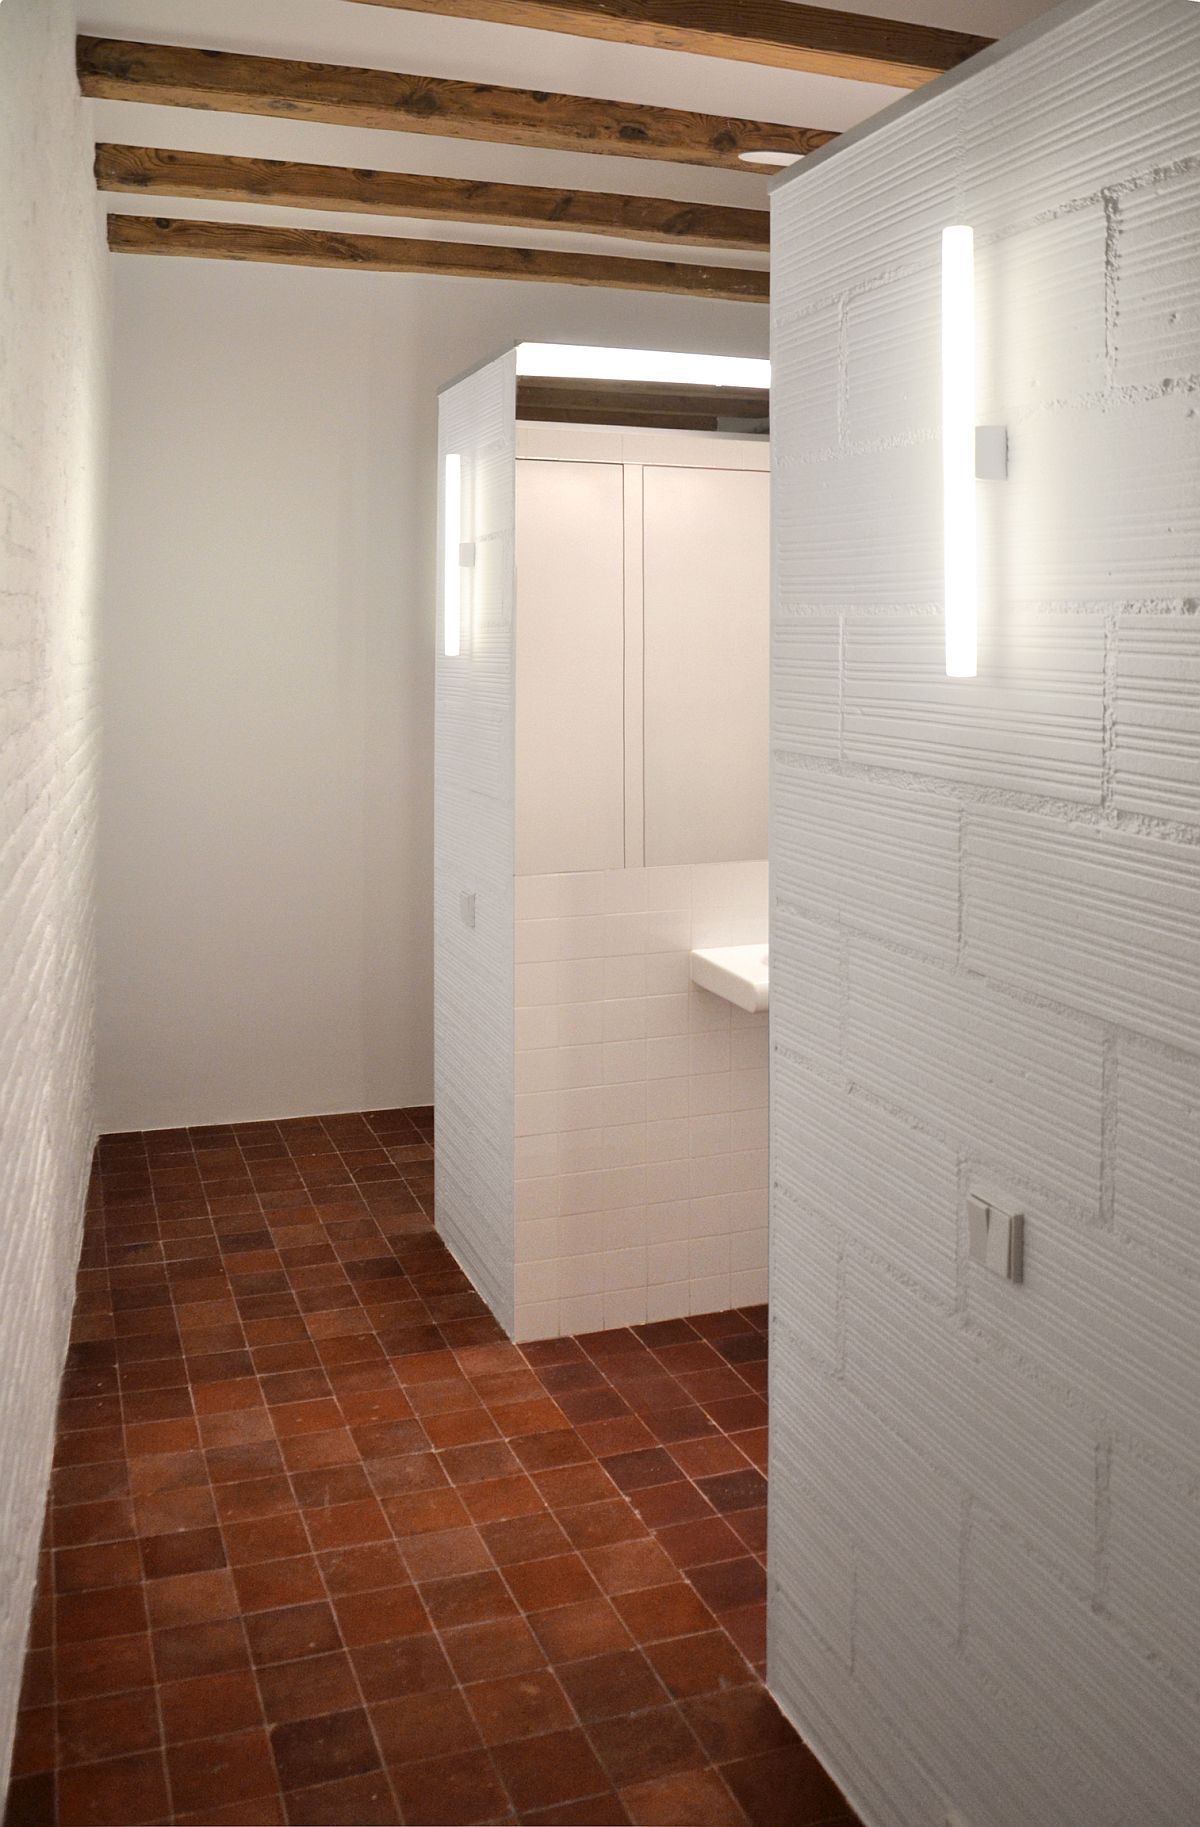 WC and wardrobe are the only two closed stuctures inside the apartment